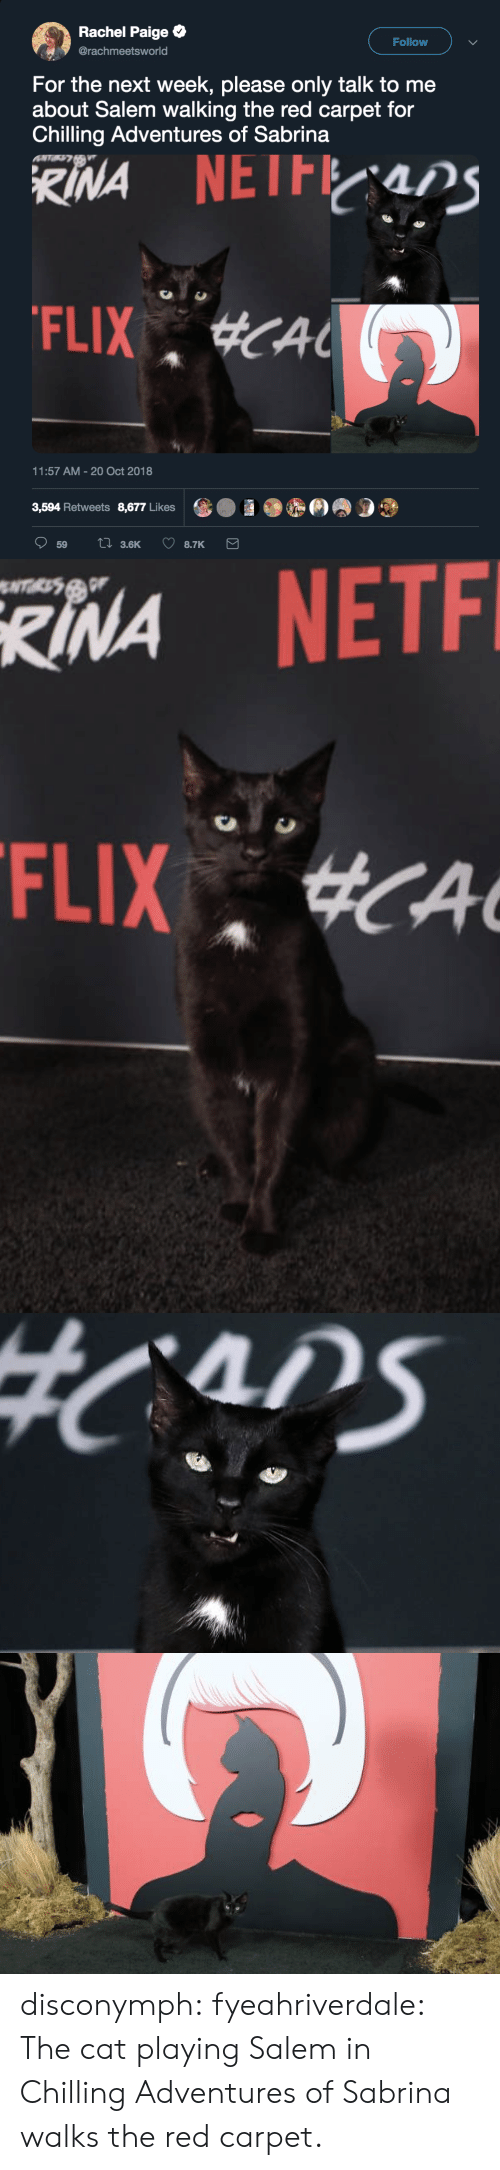 Red Carpet: Rachel Paige  @rachmeetsworld  Follow  For the next week, please only talk to me  about Salem walking the red carpet for  Chilling Adventures of Sabrina  11:57 AM-20 Oct 2018  3,594 Retweets 8,677 Likes   RINA  NETF disconymph:  fyeahriverdale: The cat playing Salem in Chilling Adventures of Sabrina walks the red carpet.